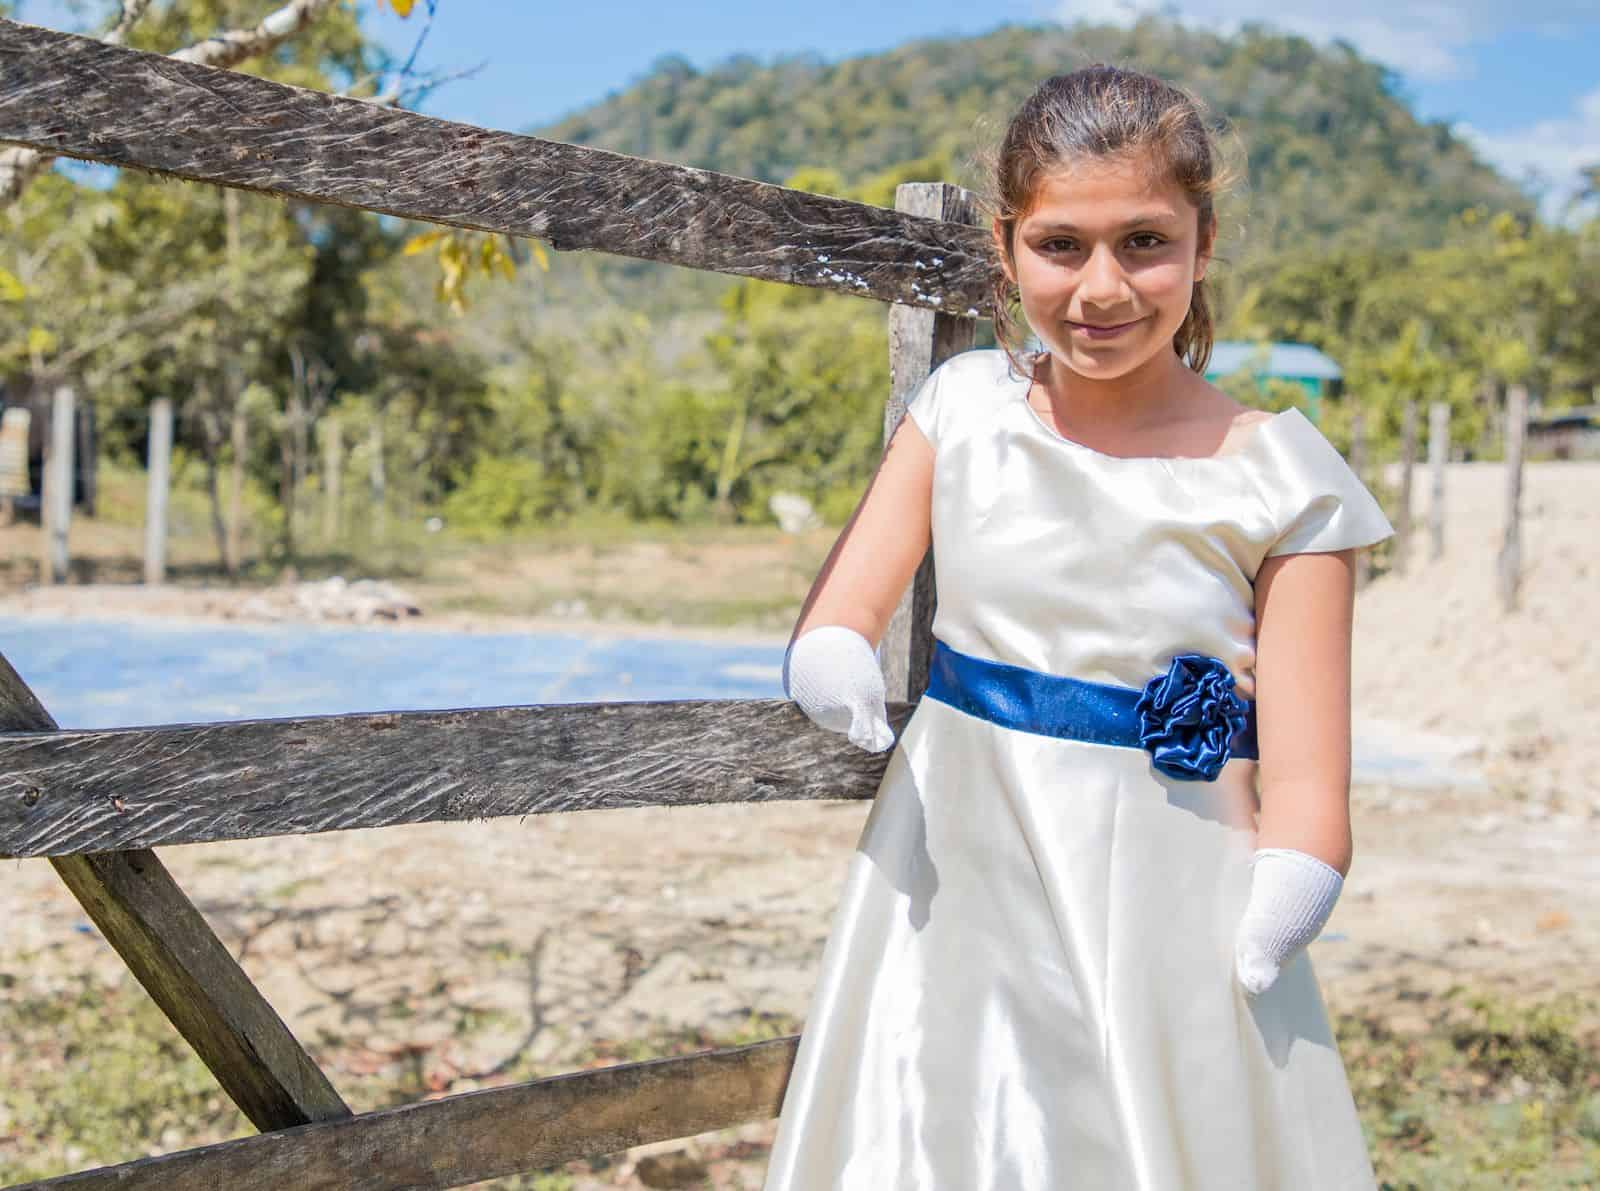 A girl with limb difference wearing a white dress with a blue sash leans against a fence.